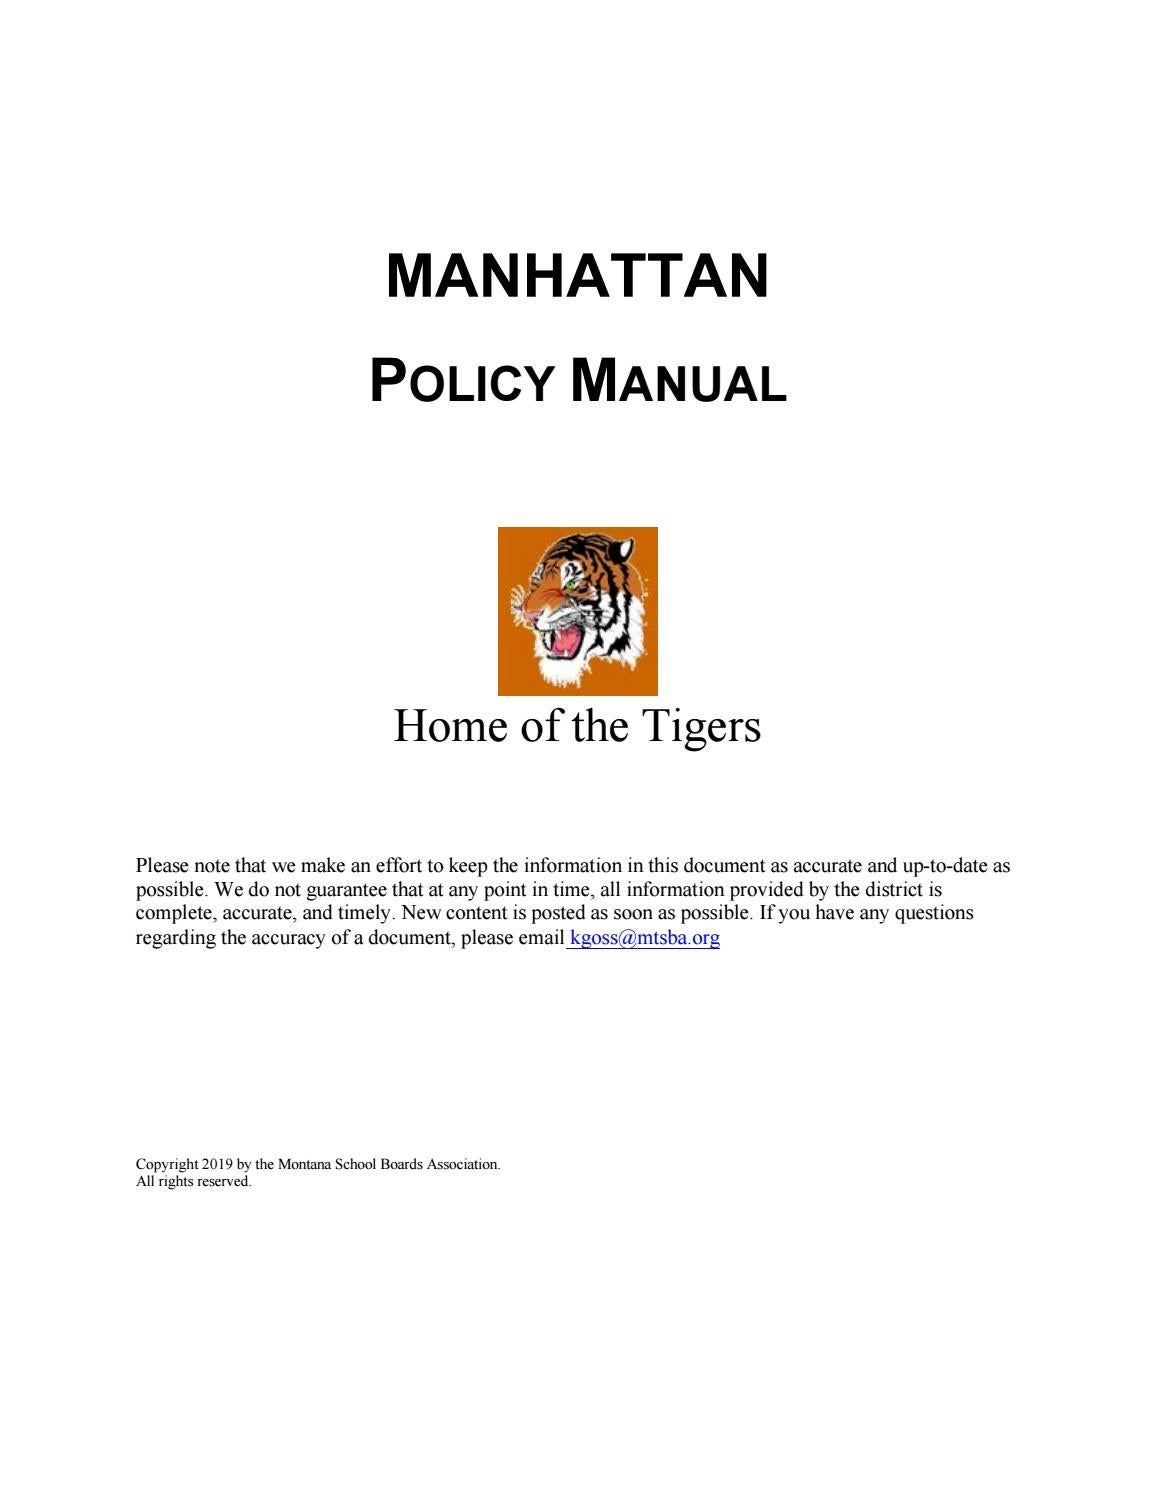 Procedural Safeguards Wyoming Department Of Education State >> Manhattan School District Policy Manual By Montana School